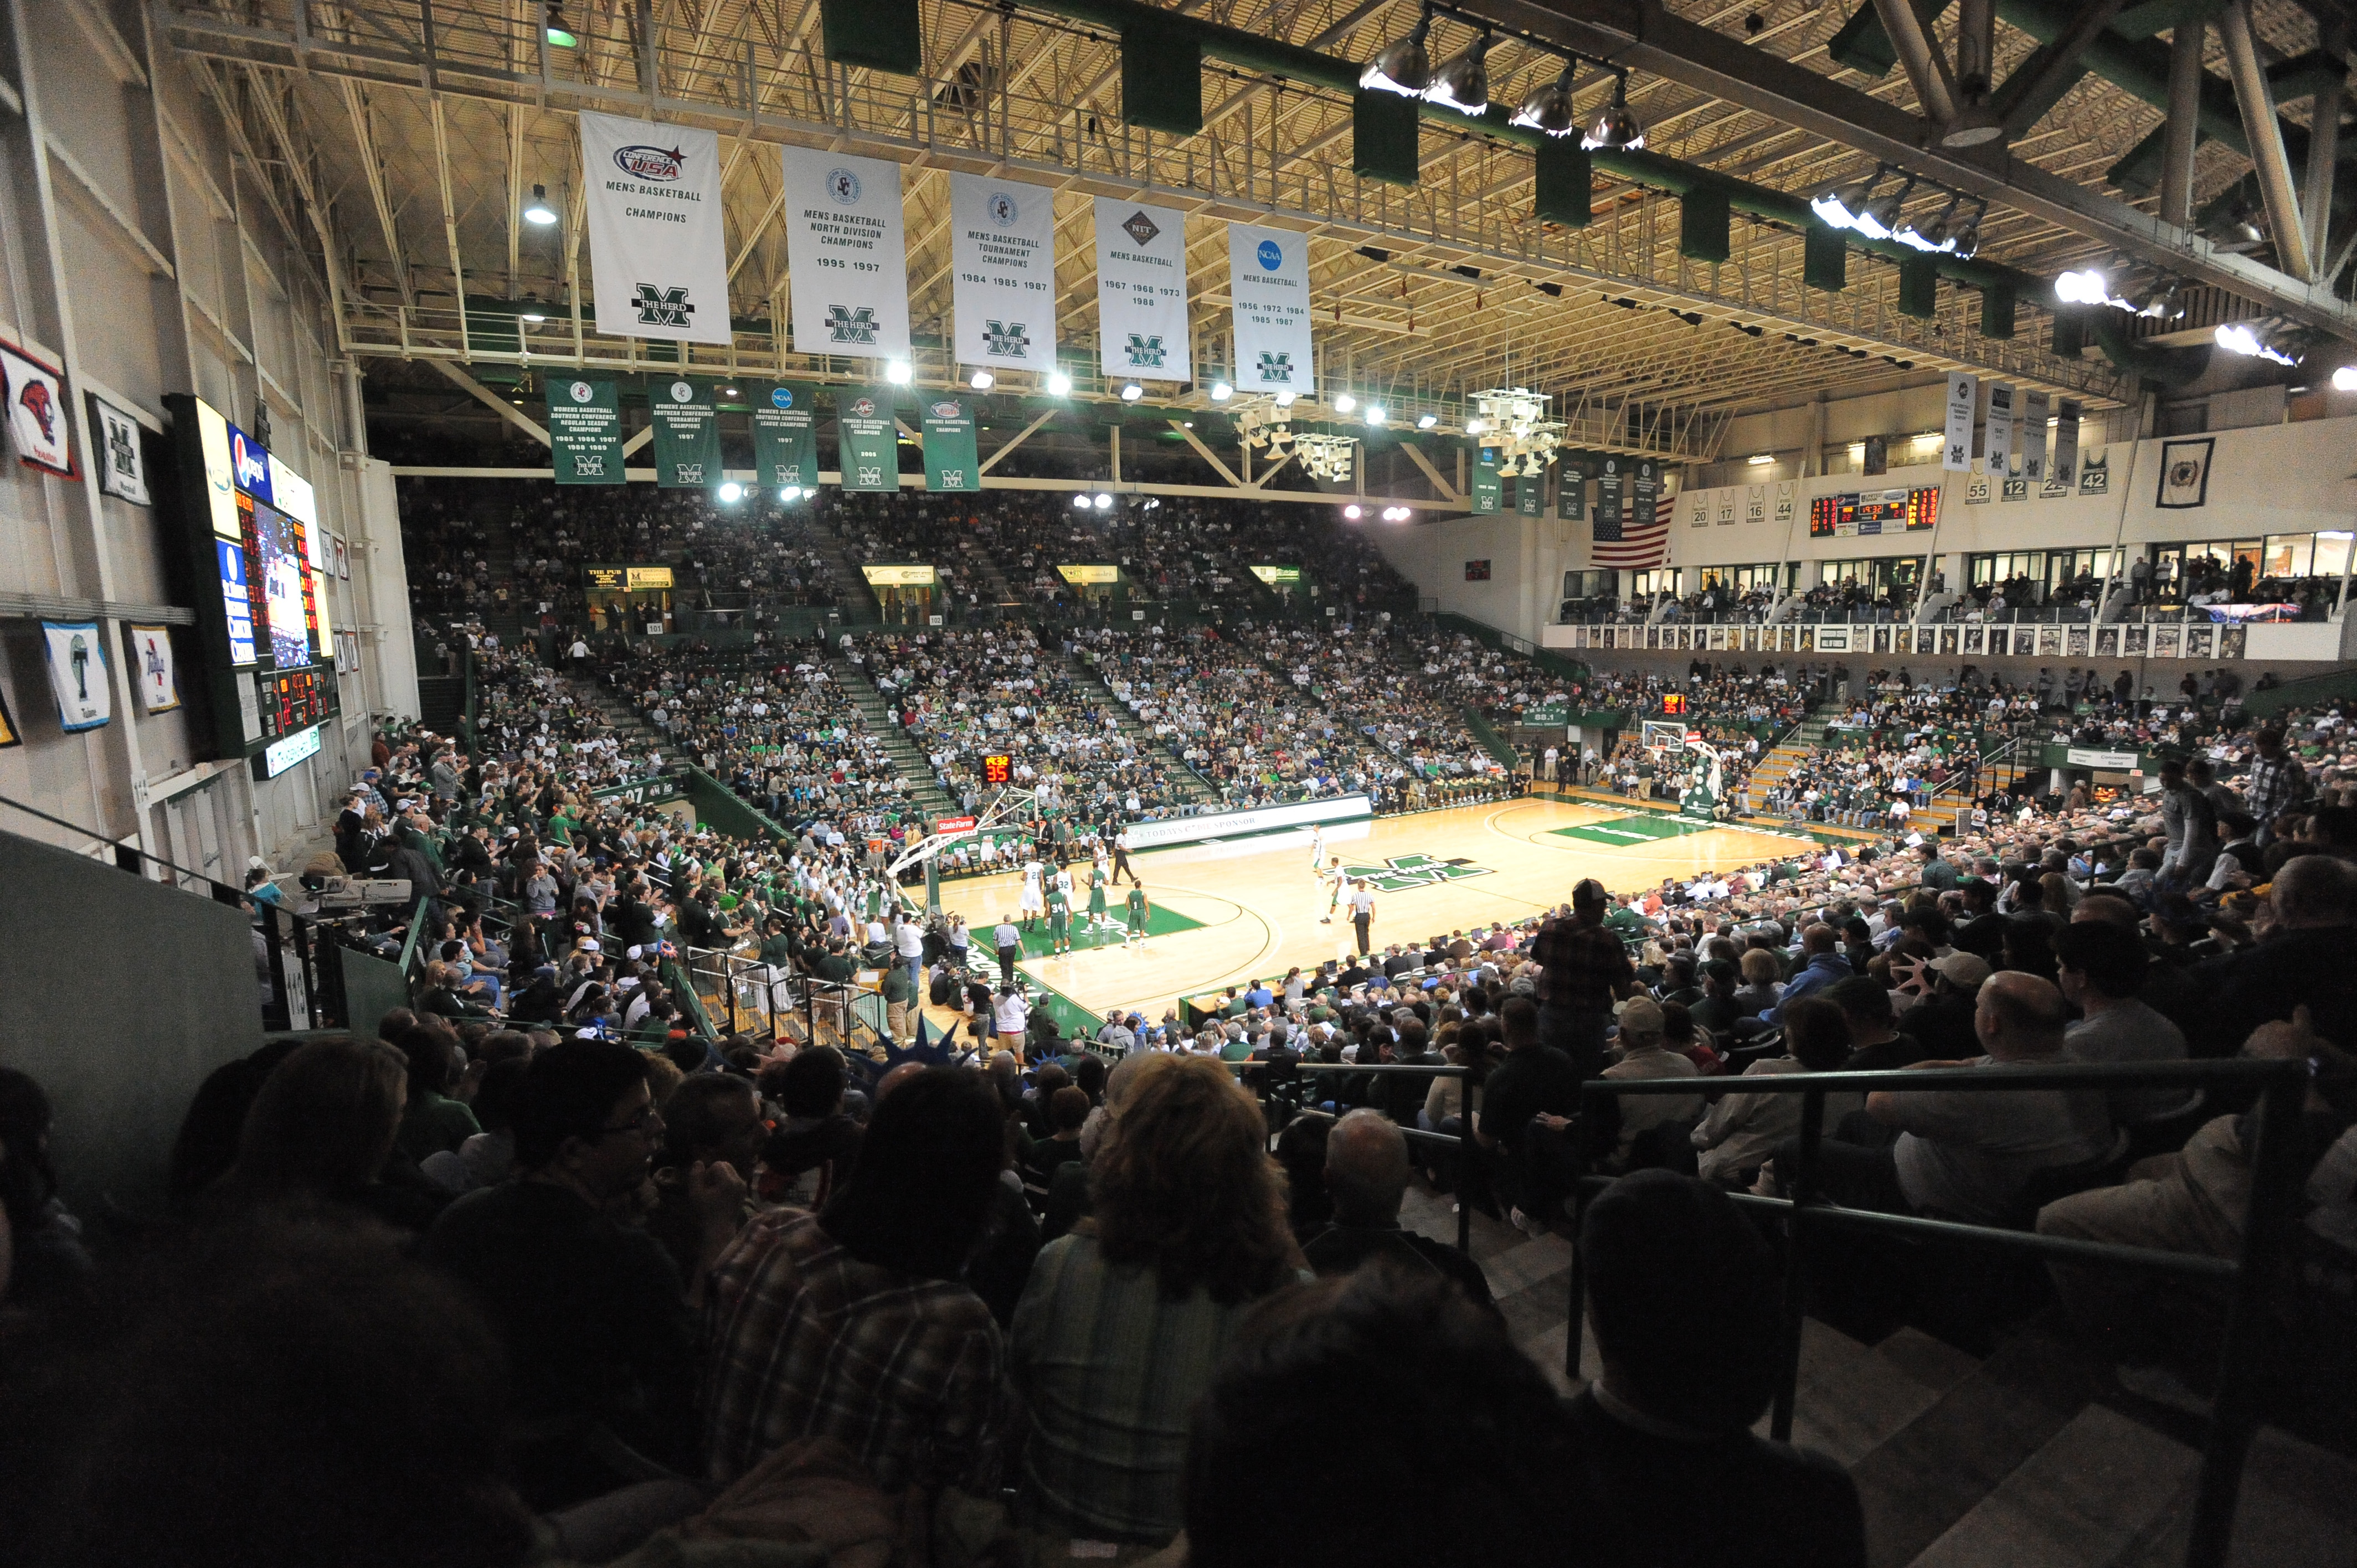 The basketball arena can hold a little over 9,000 people.